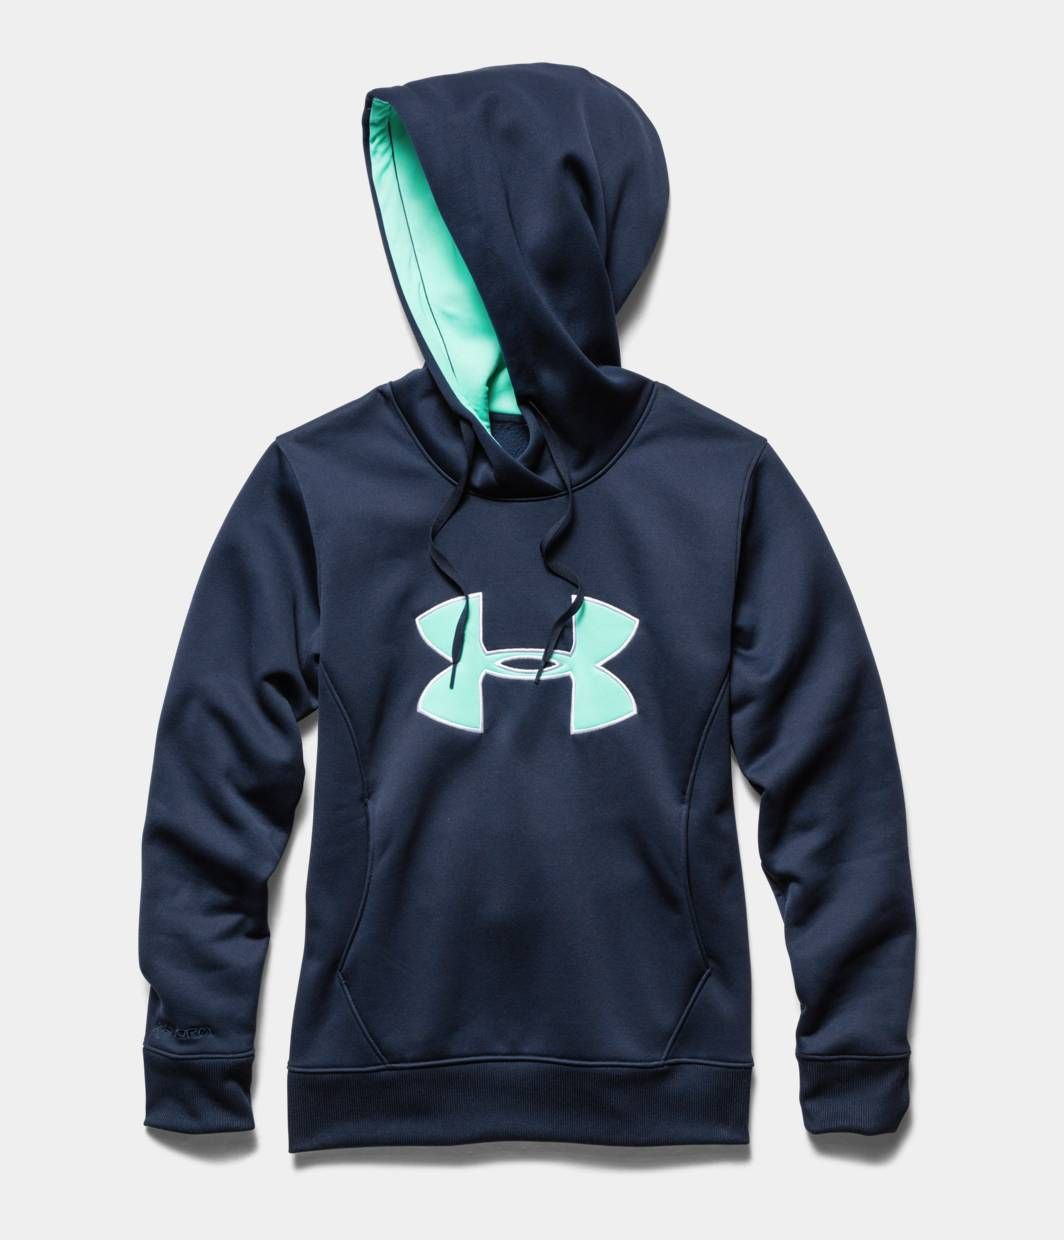 d1c52f209394 Under Armour Sweatshirts  1246825 090 ColdGear Storm UA Rival ...